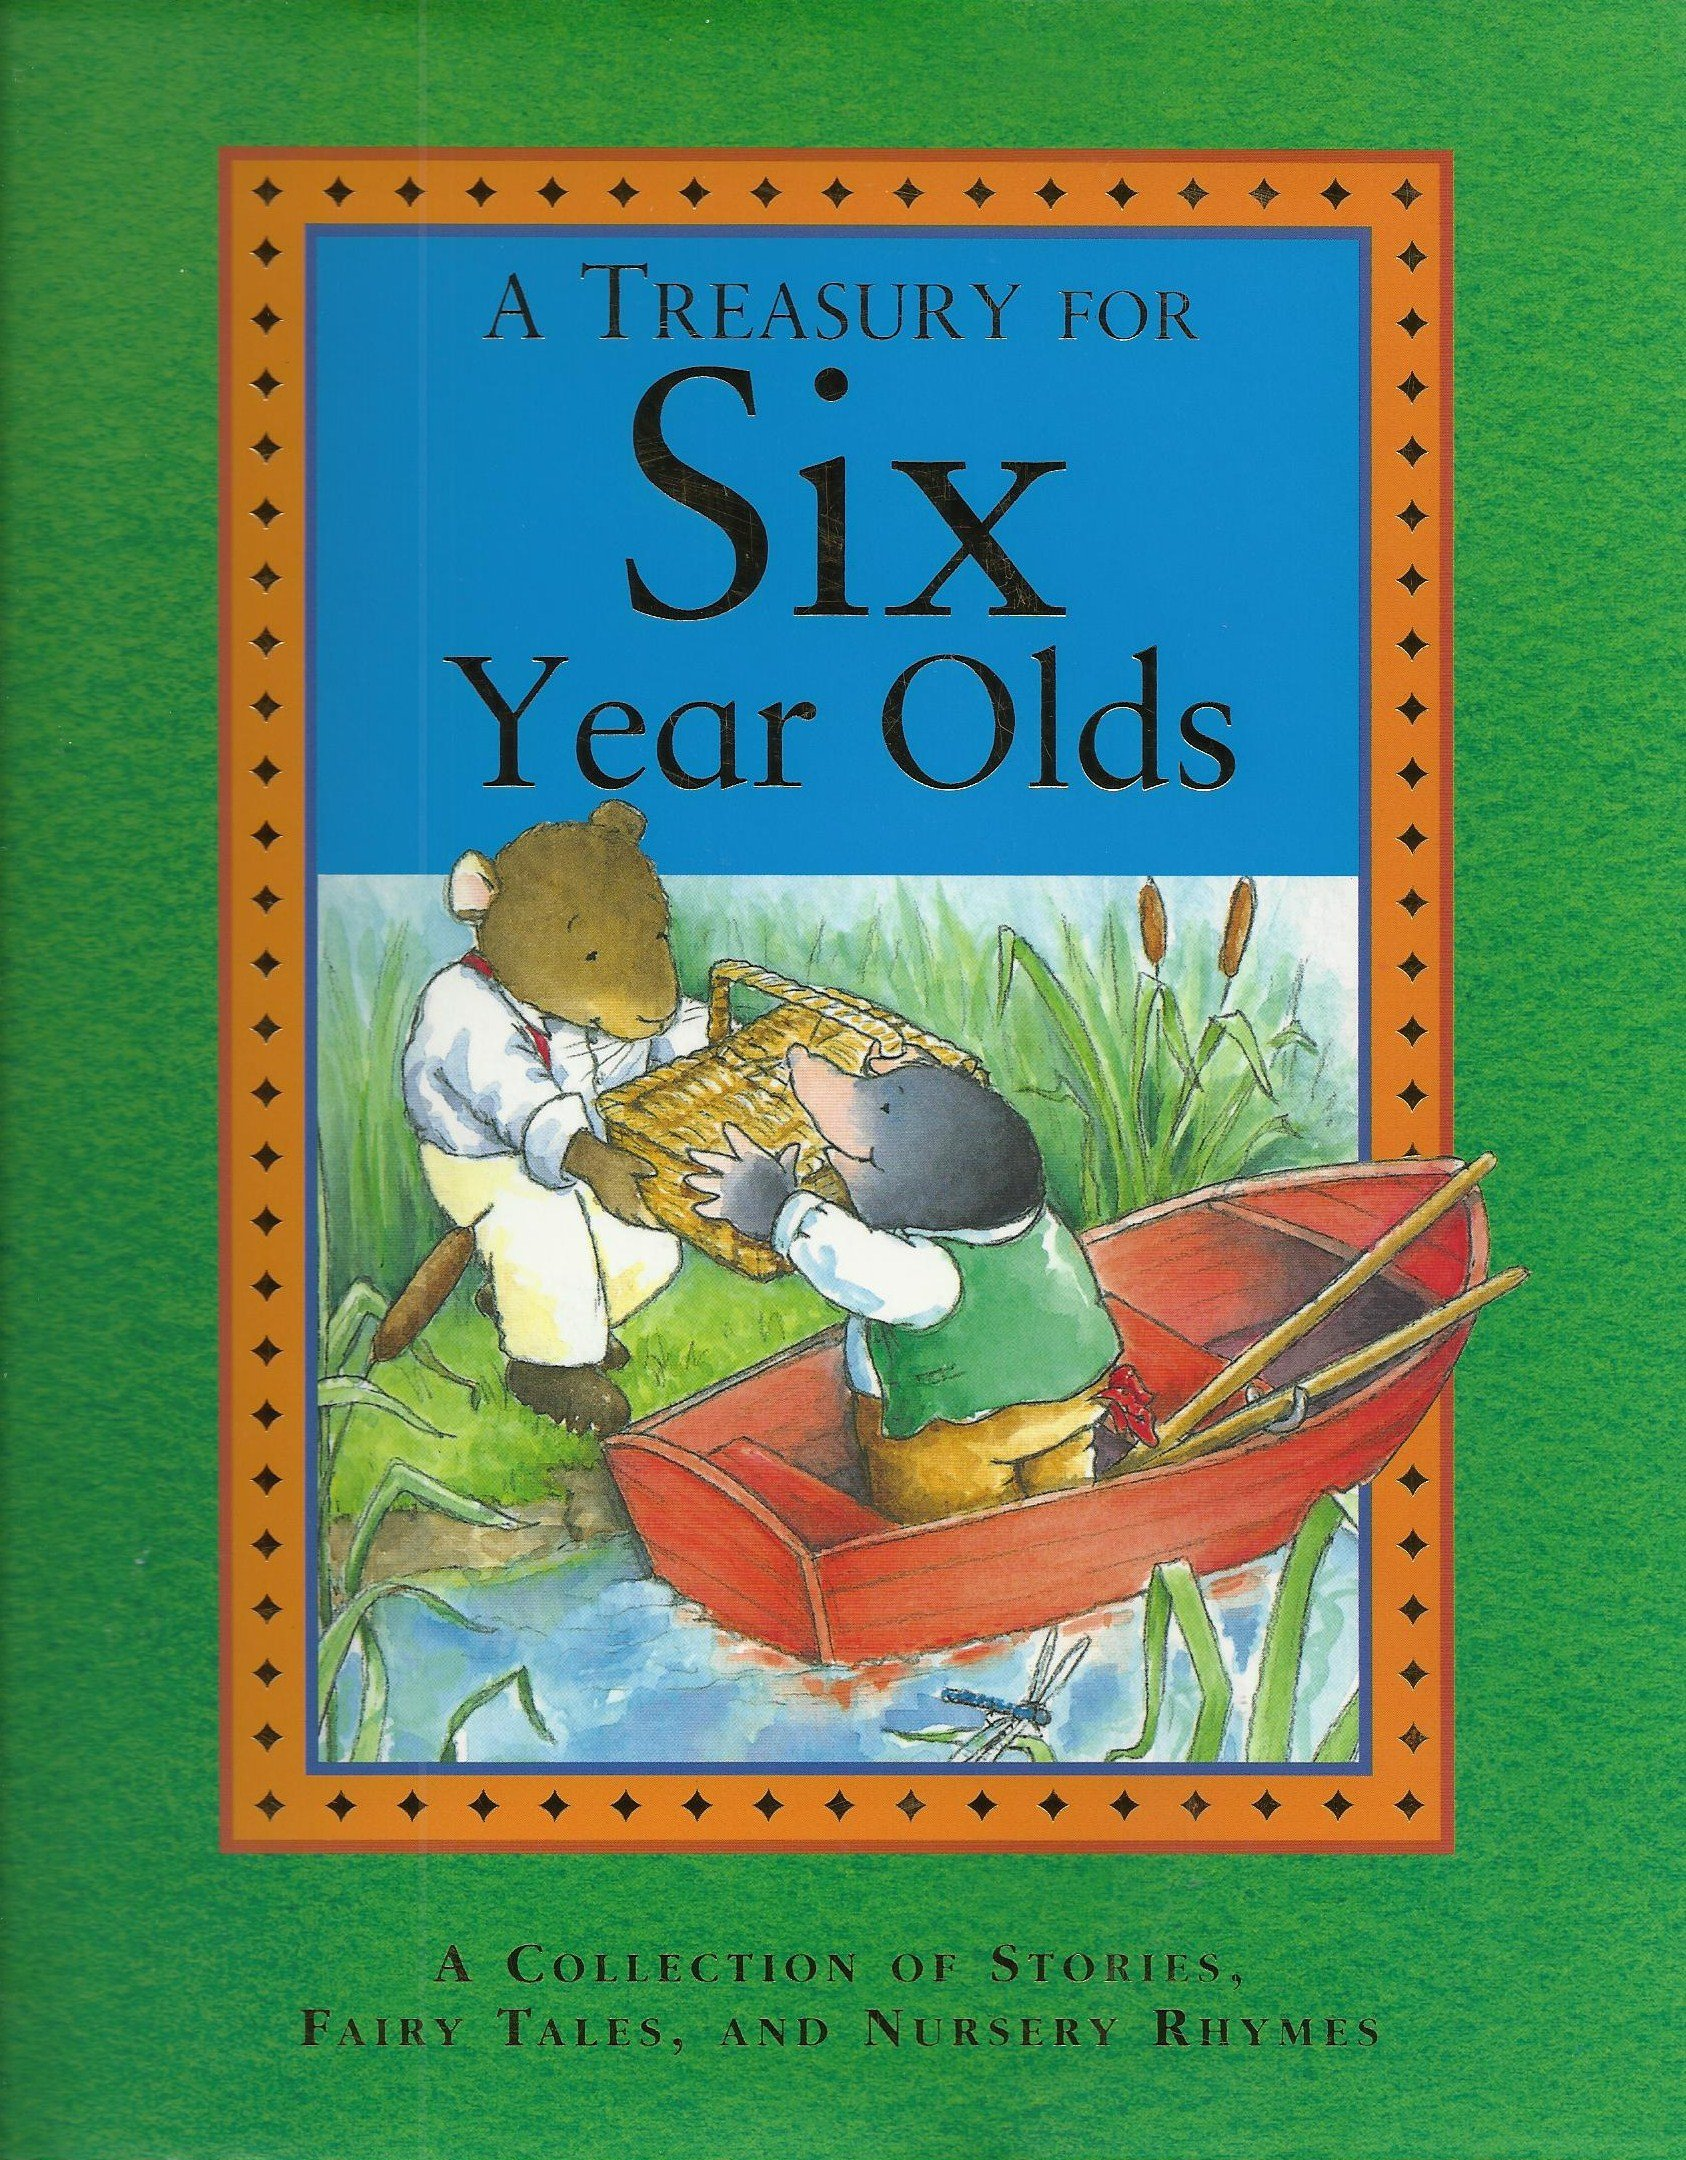 A Treasury for Six Year Olds: A Collection of Stories, Fairy Tales, and Nursery Rhymes. pdf